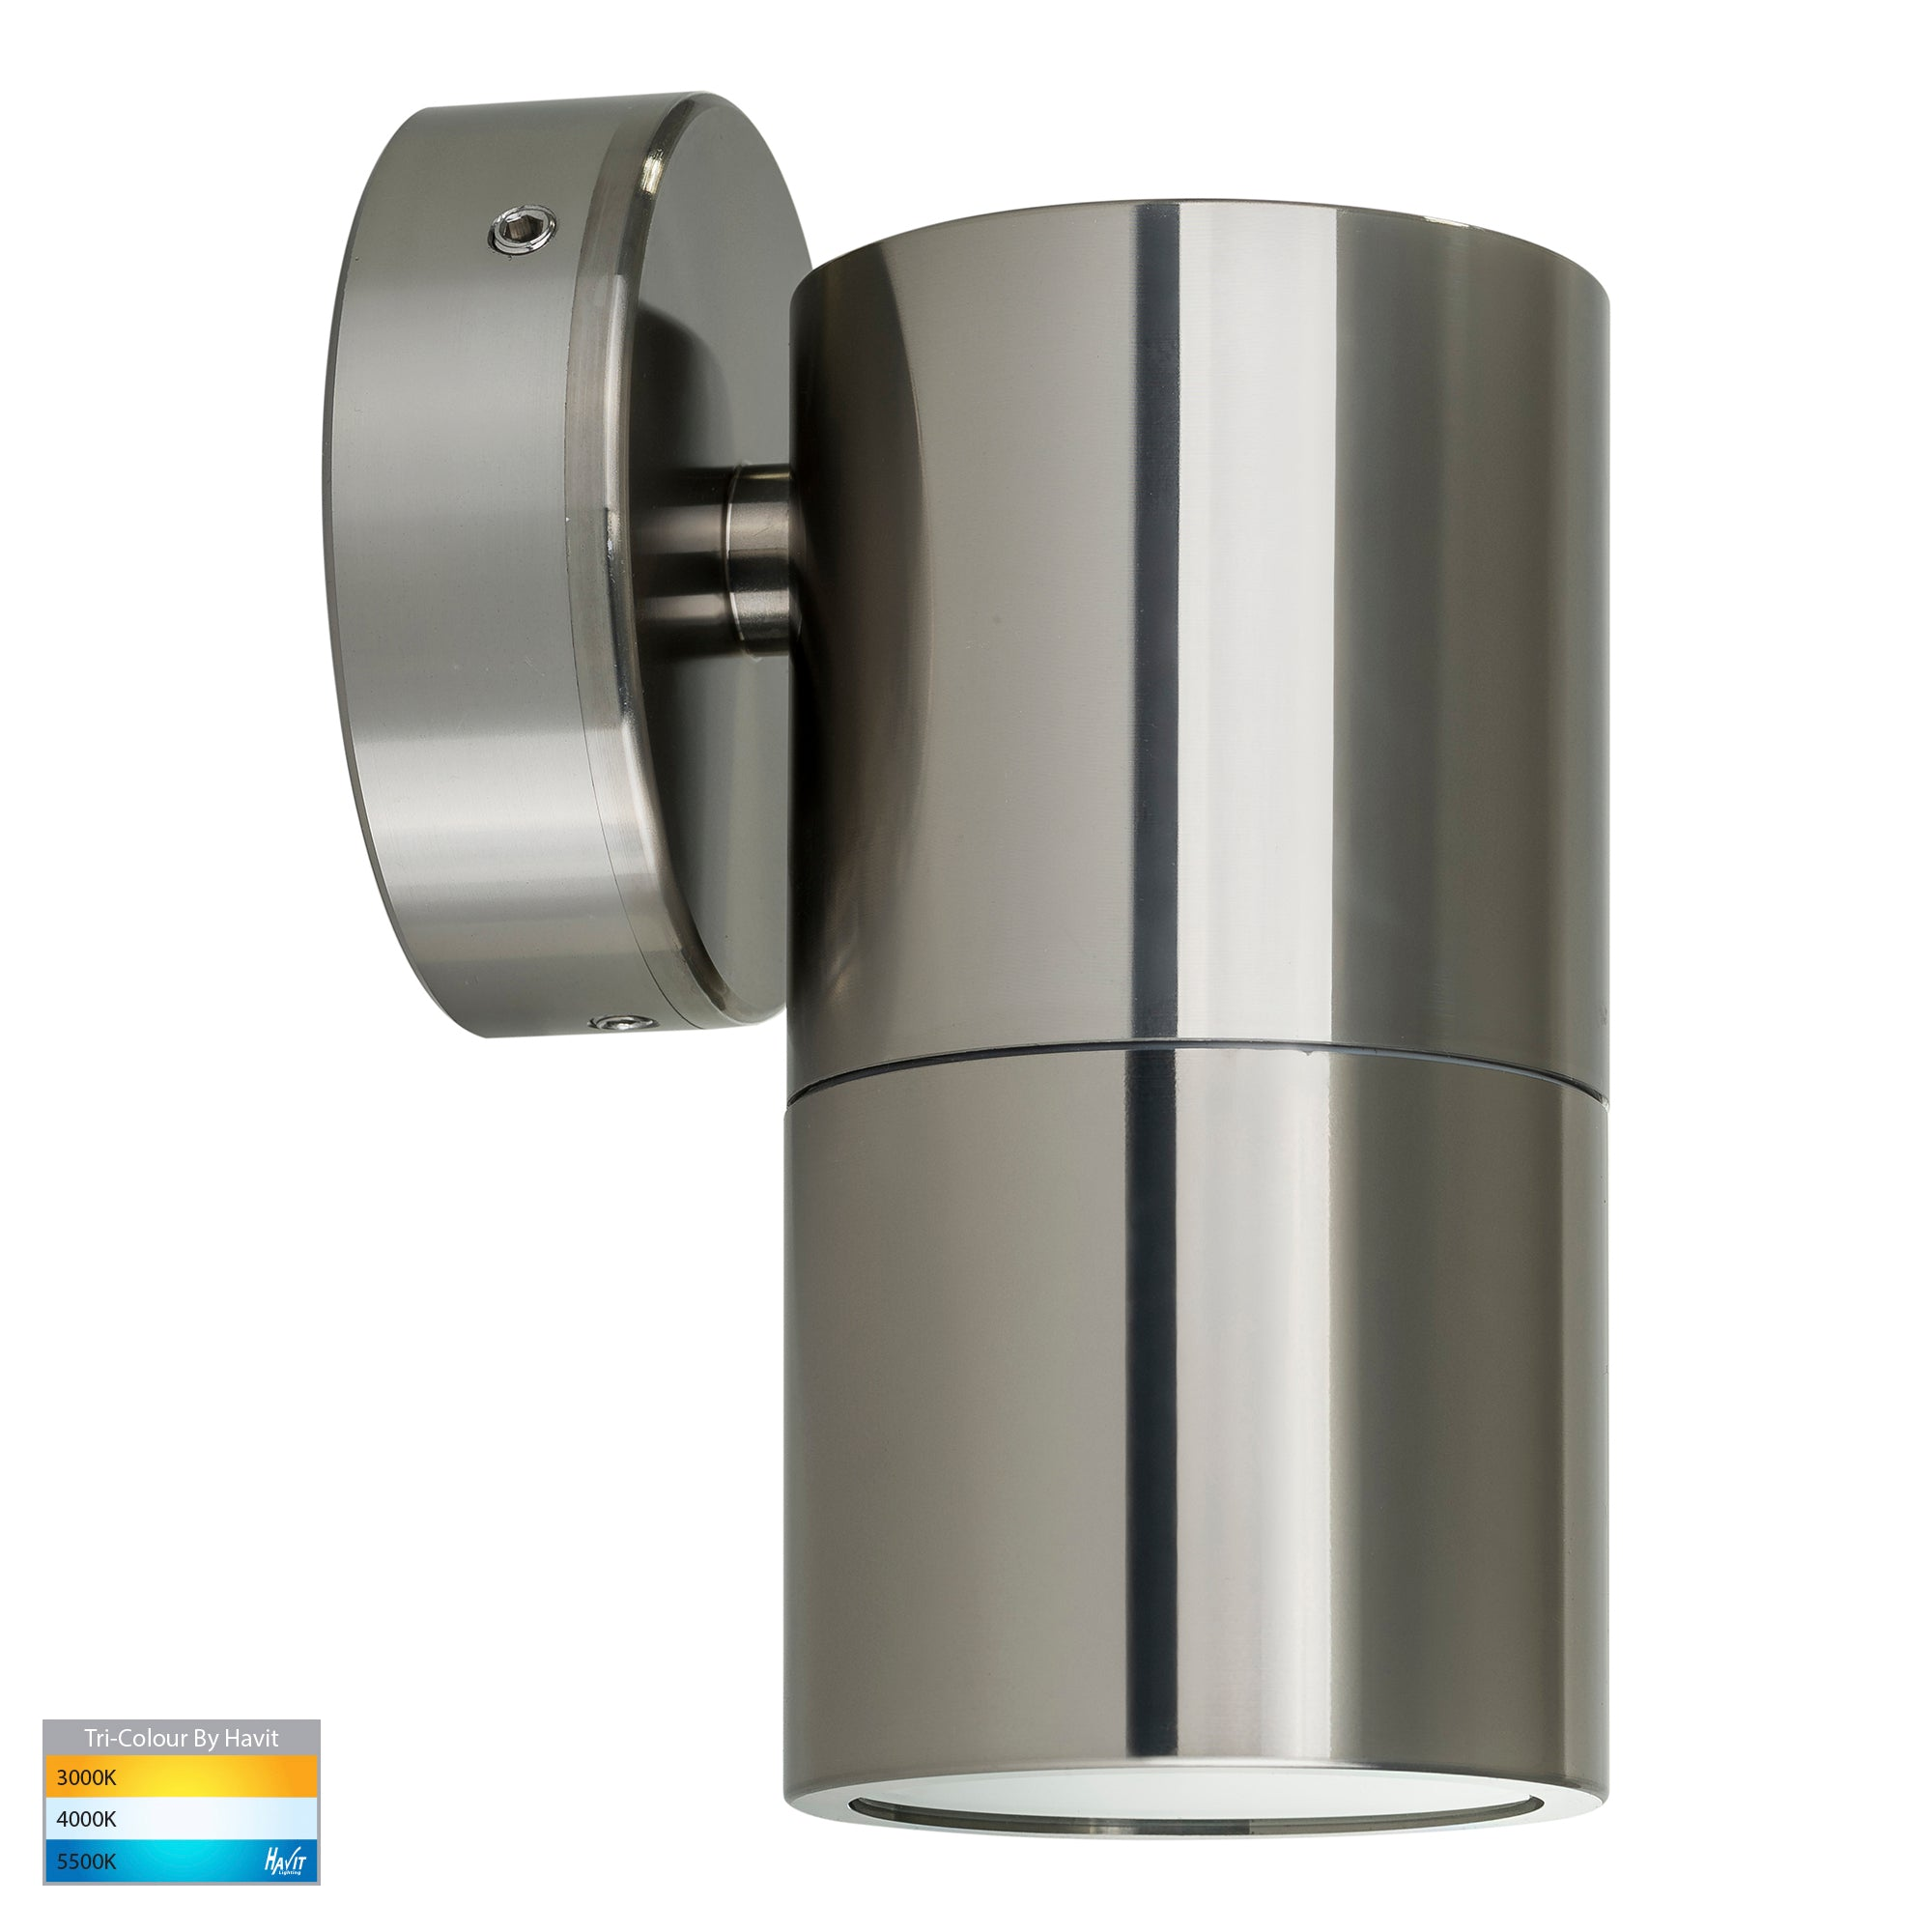 HV1185T-HV1187T - Tivah Titanium Aluminum TRI Colour Fixed Down Wall Pillar Lights